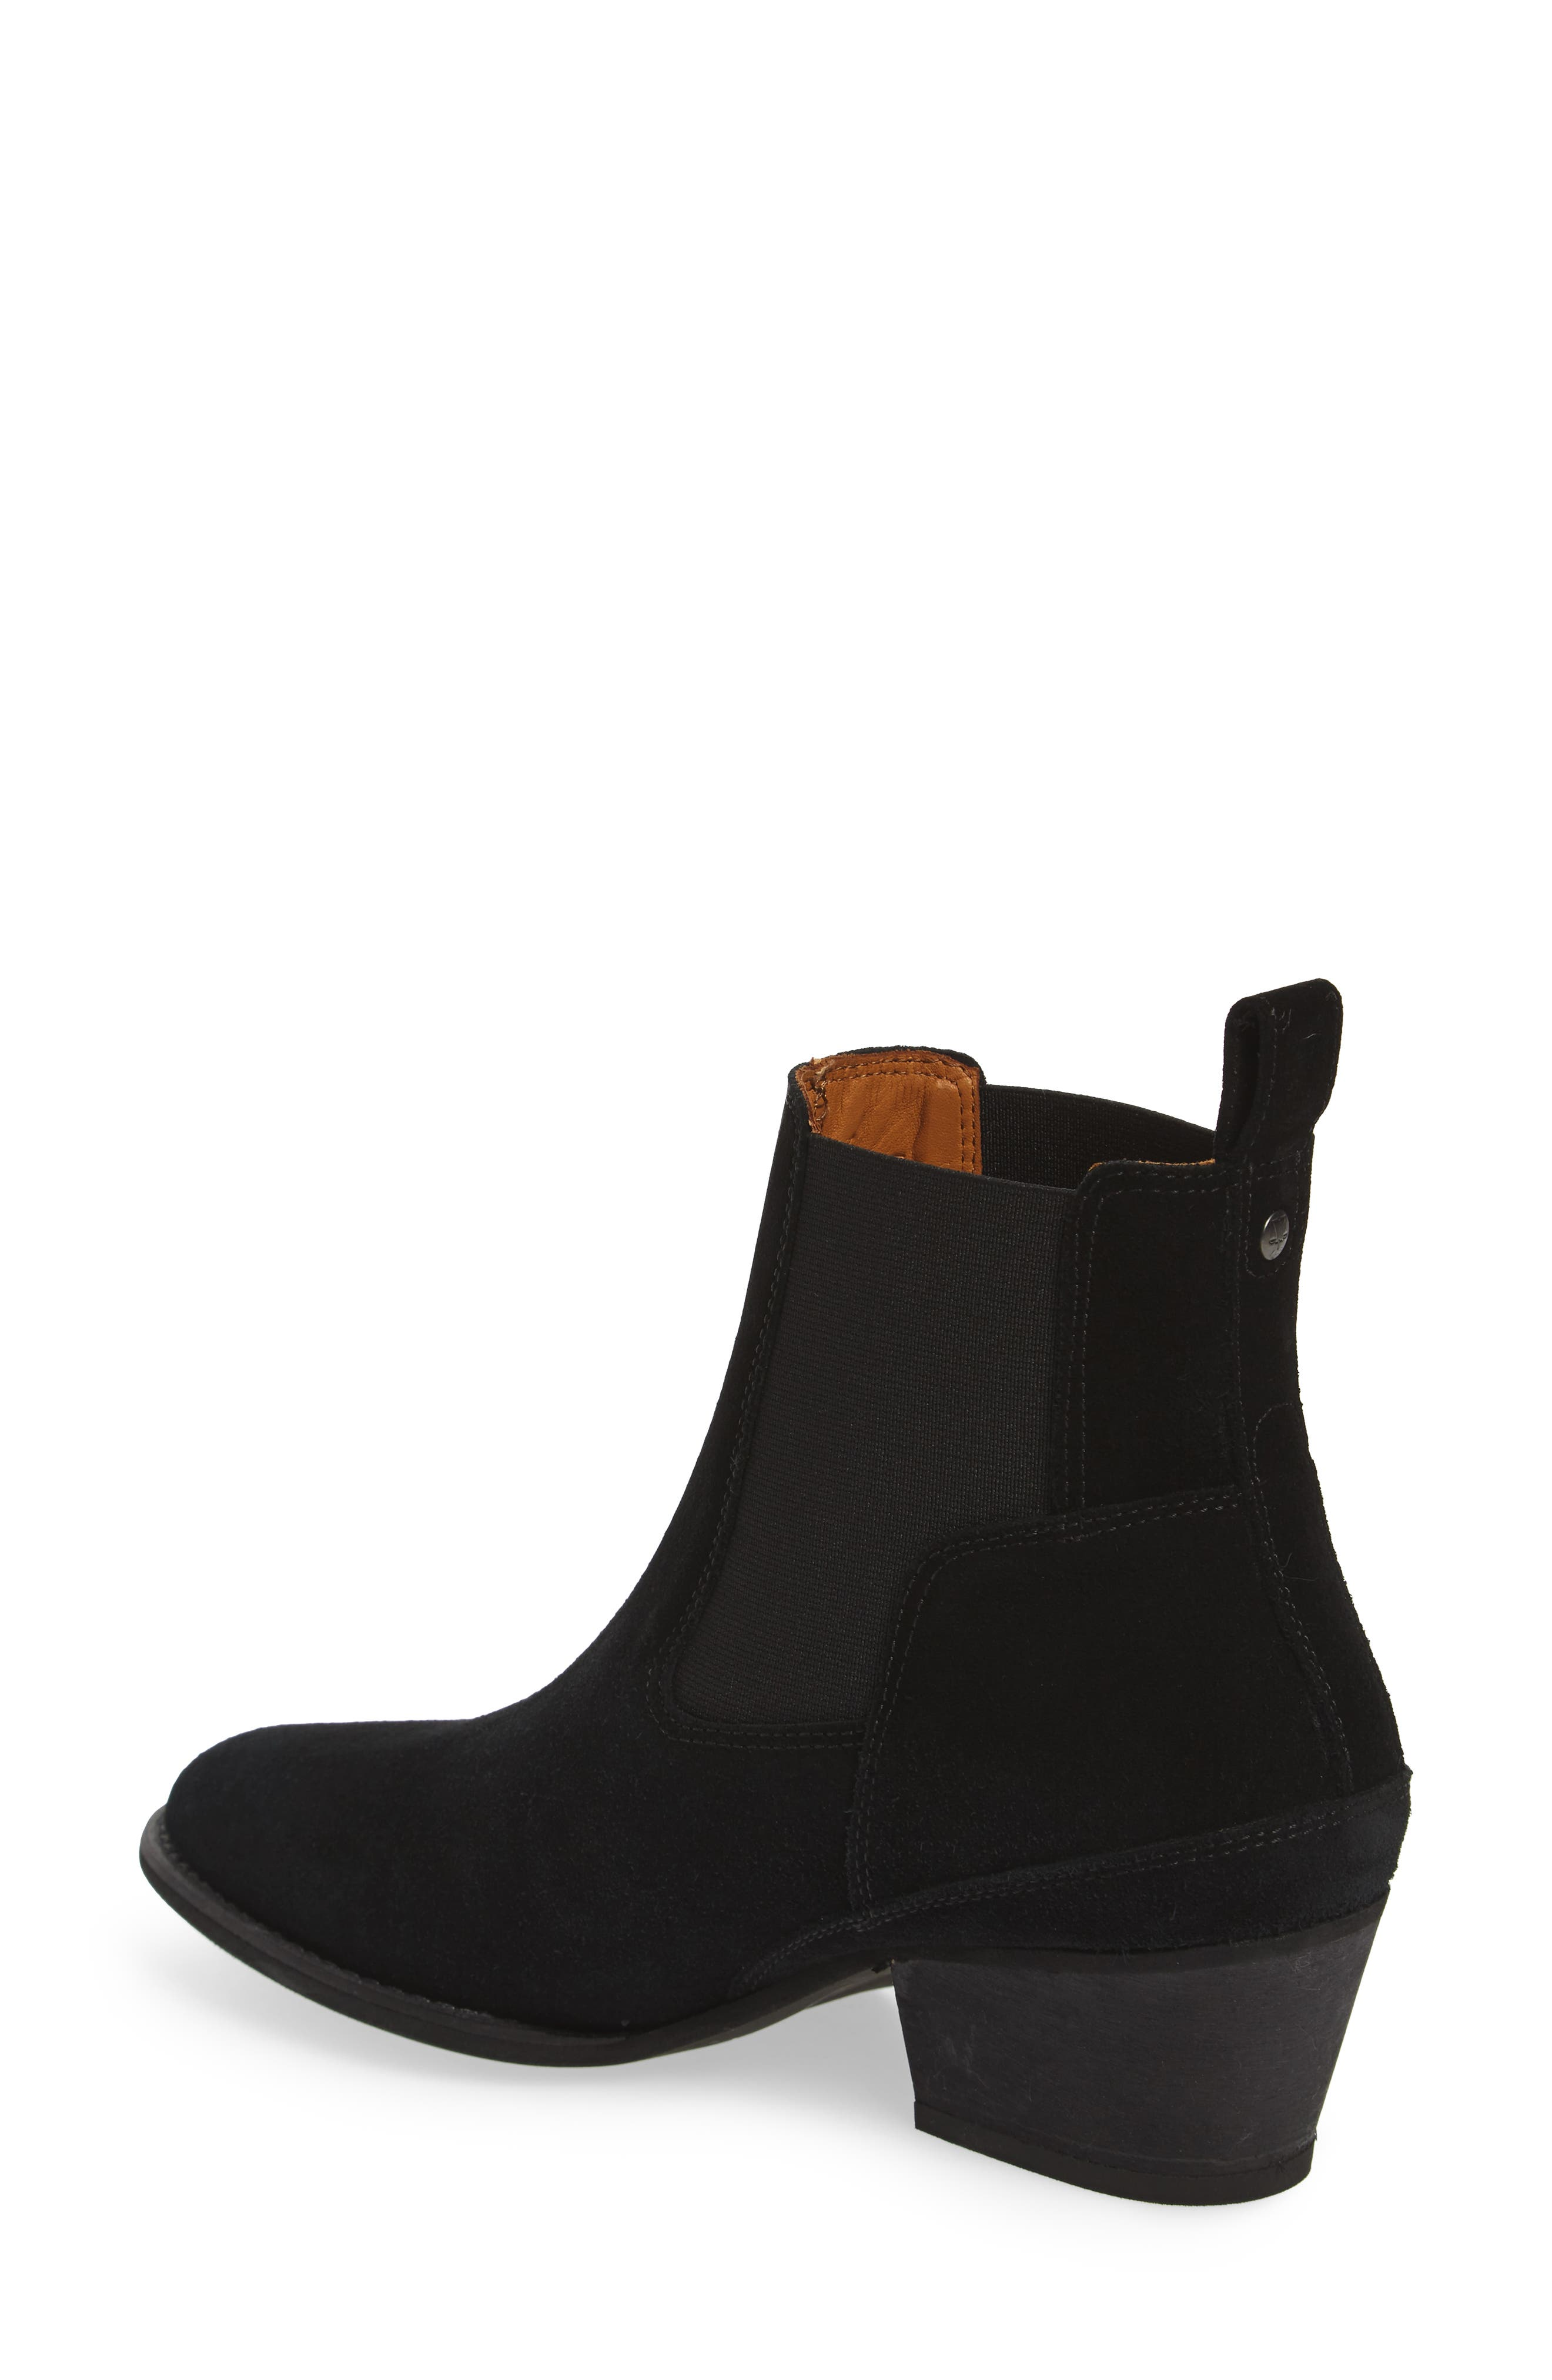 Original Refined Water Resistant Chelsea Boot,                             Alternate thumbnail 3, color,